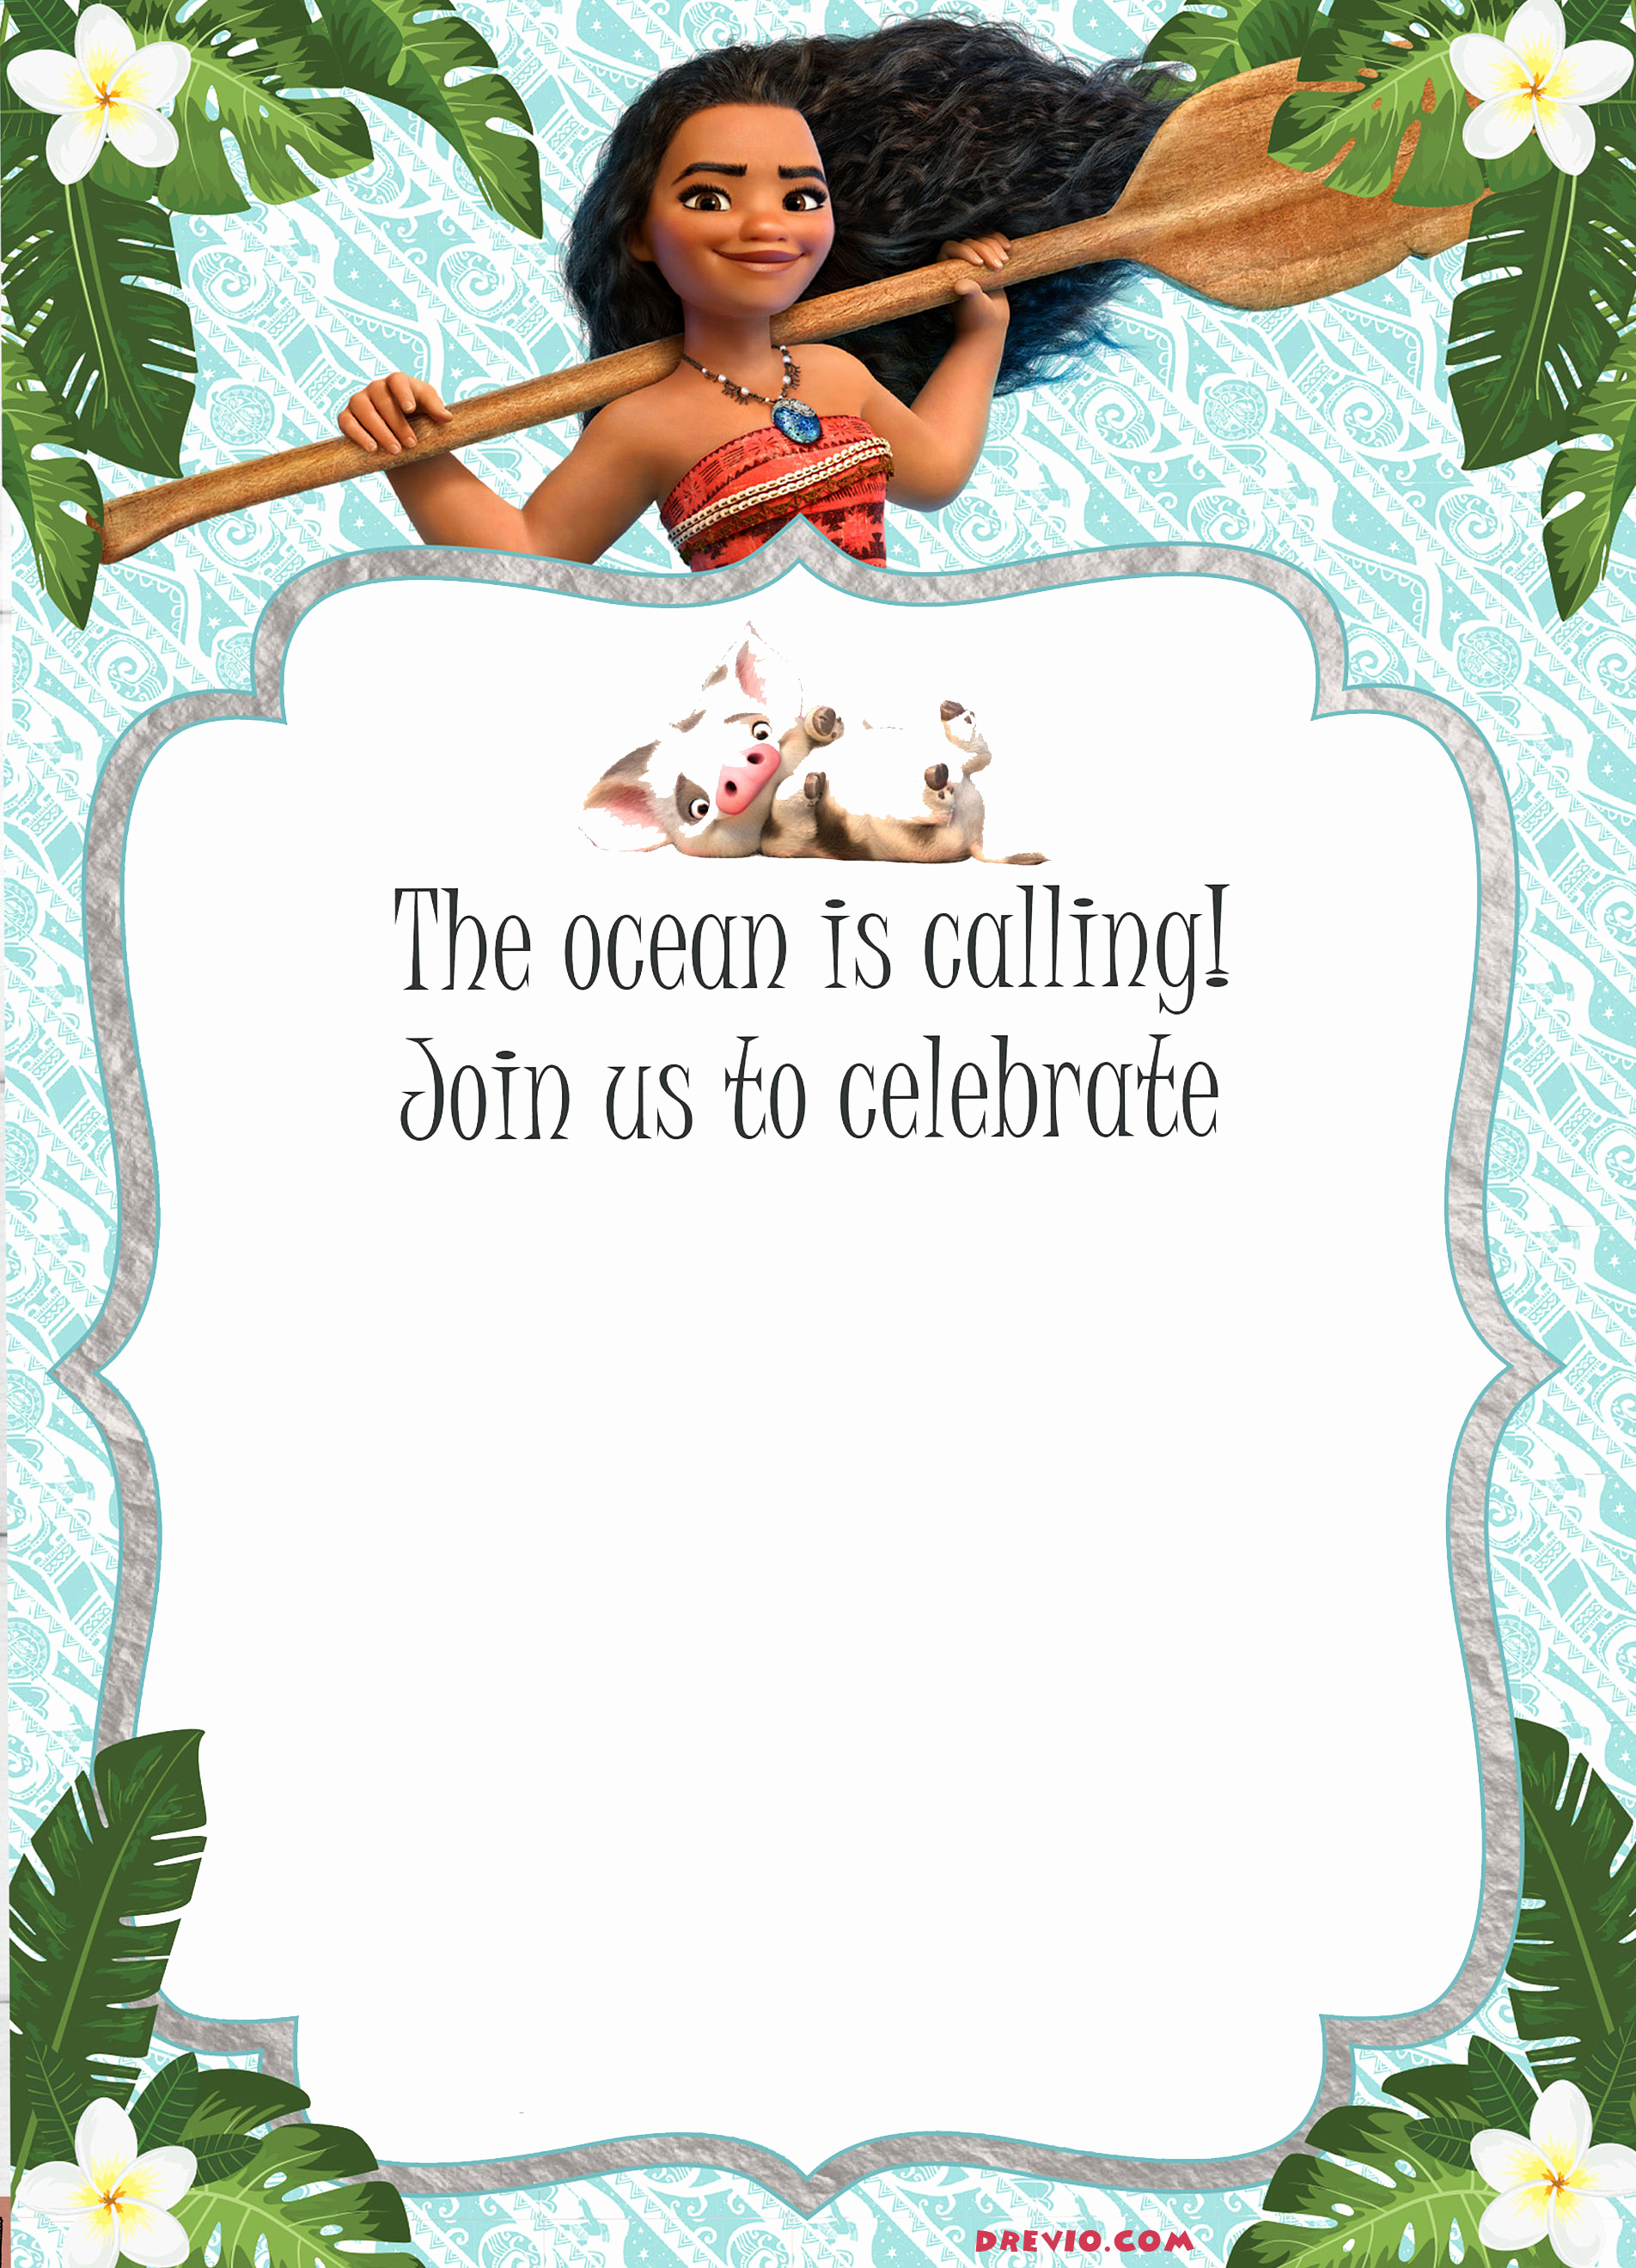 Free Moana Invitation Template Beautiful Free Moana Birthday Invitation Template Free Invitation